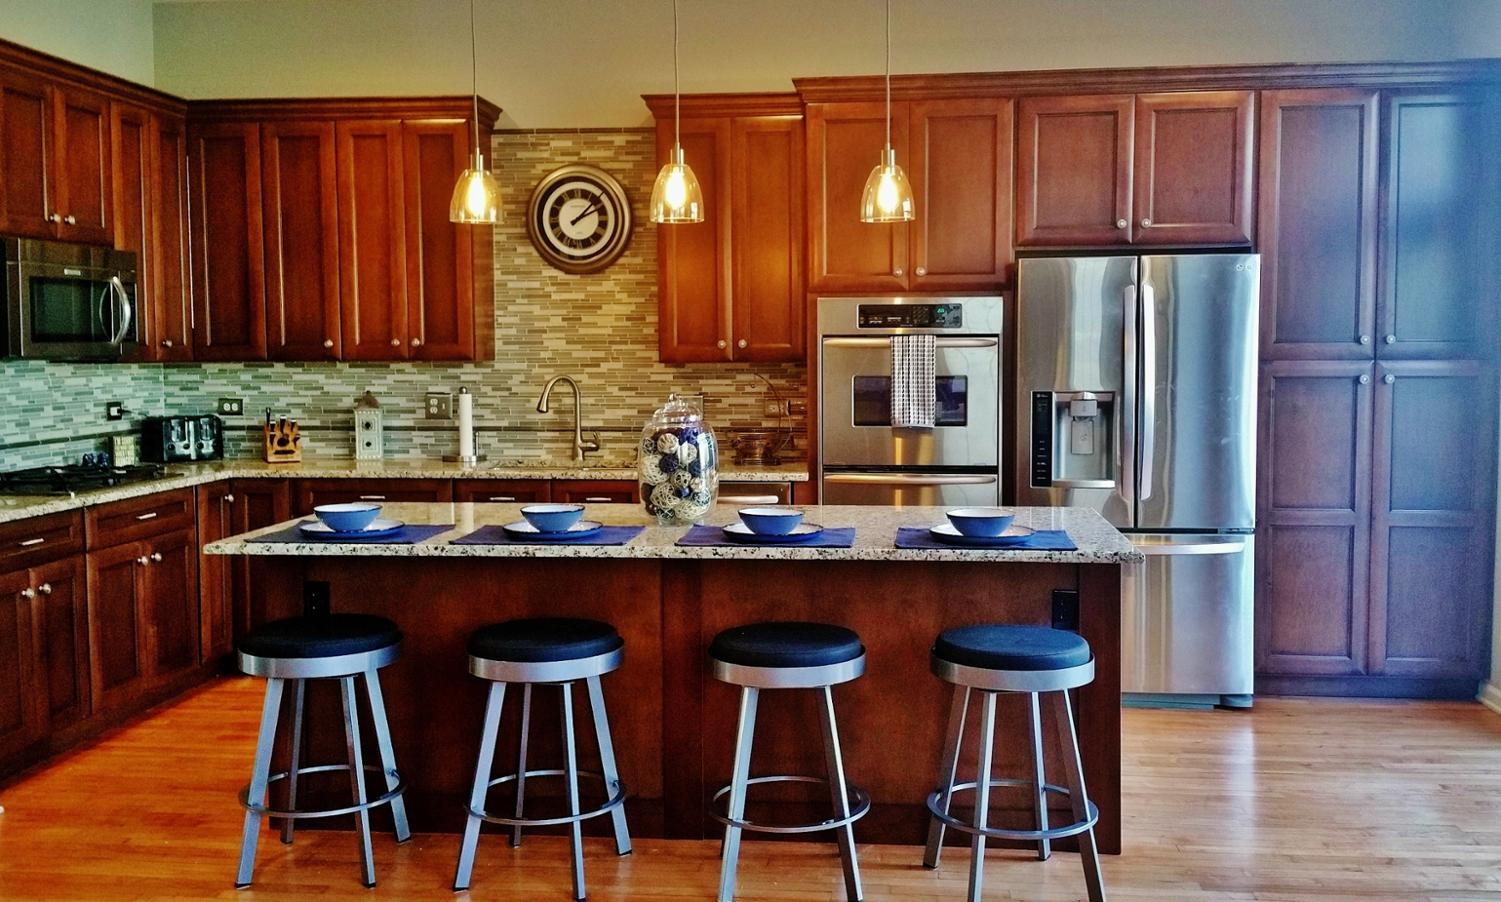 Do you offer cabinet refacing services, in addition to new cabinetry?